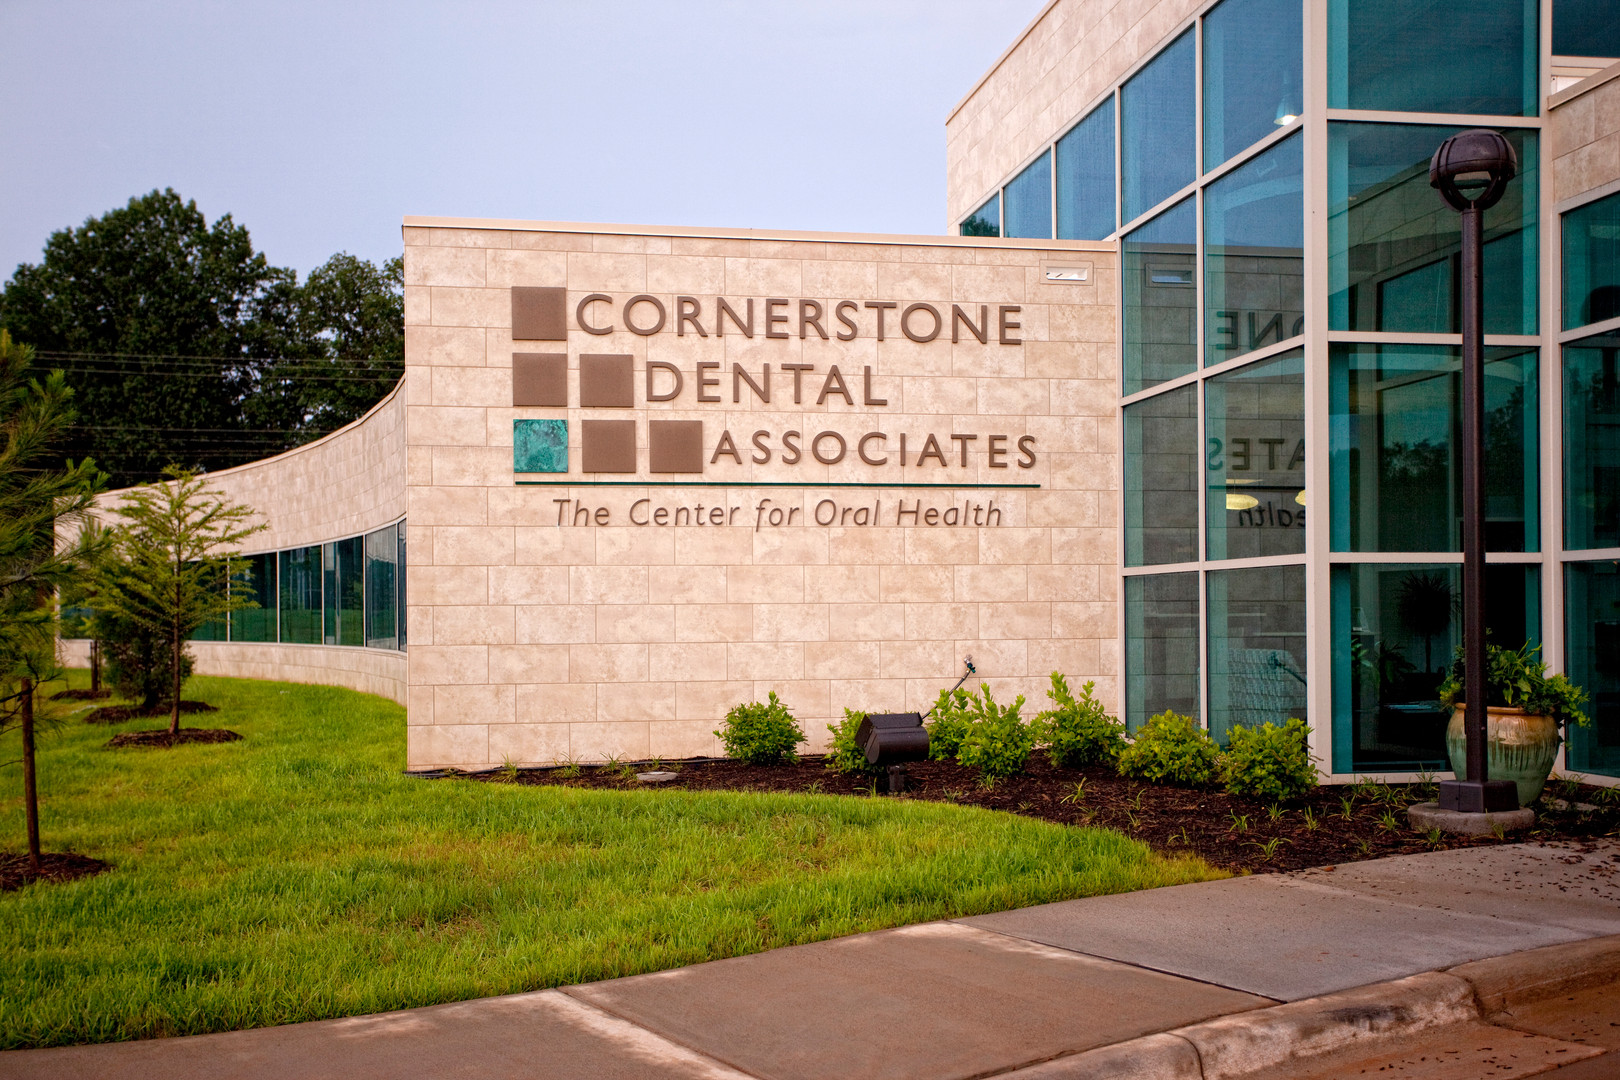 CORNERSTONE DENTAL ASSOCIATES 18